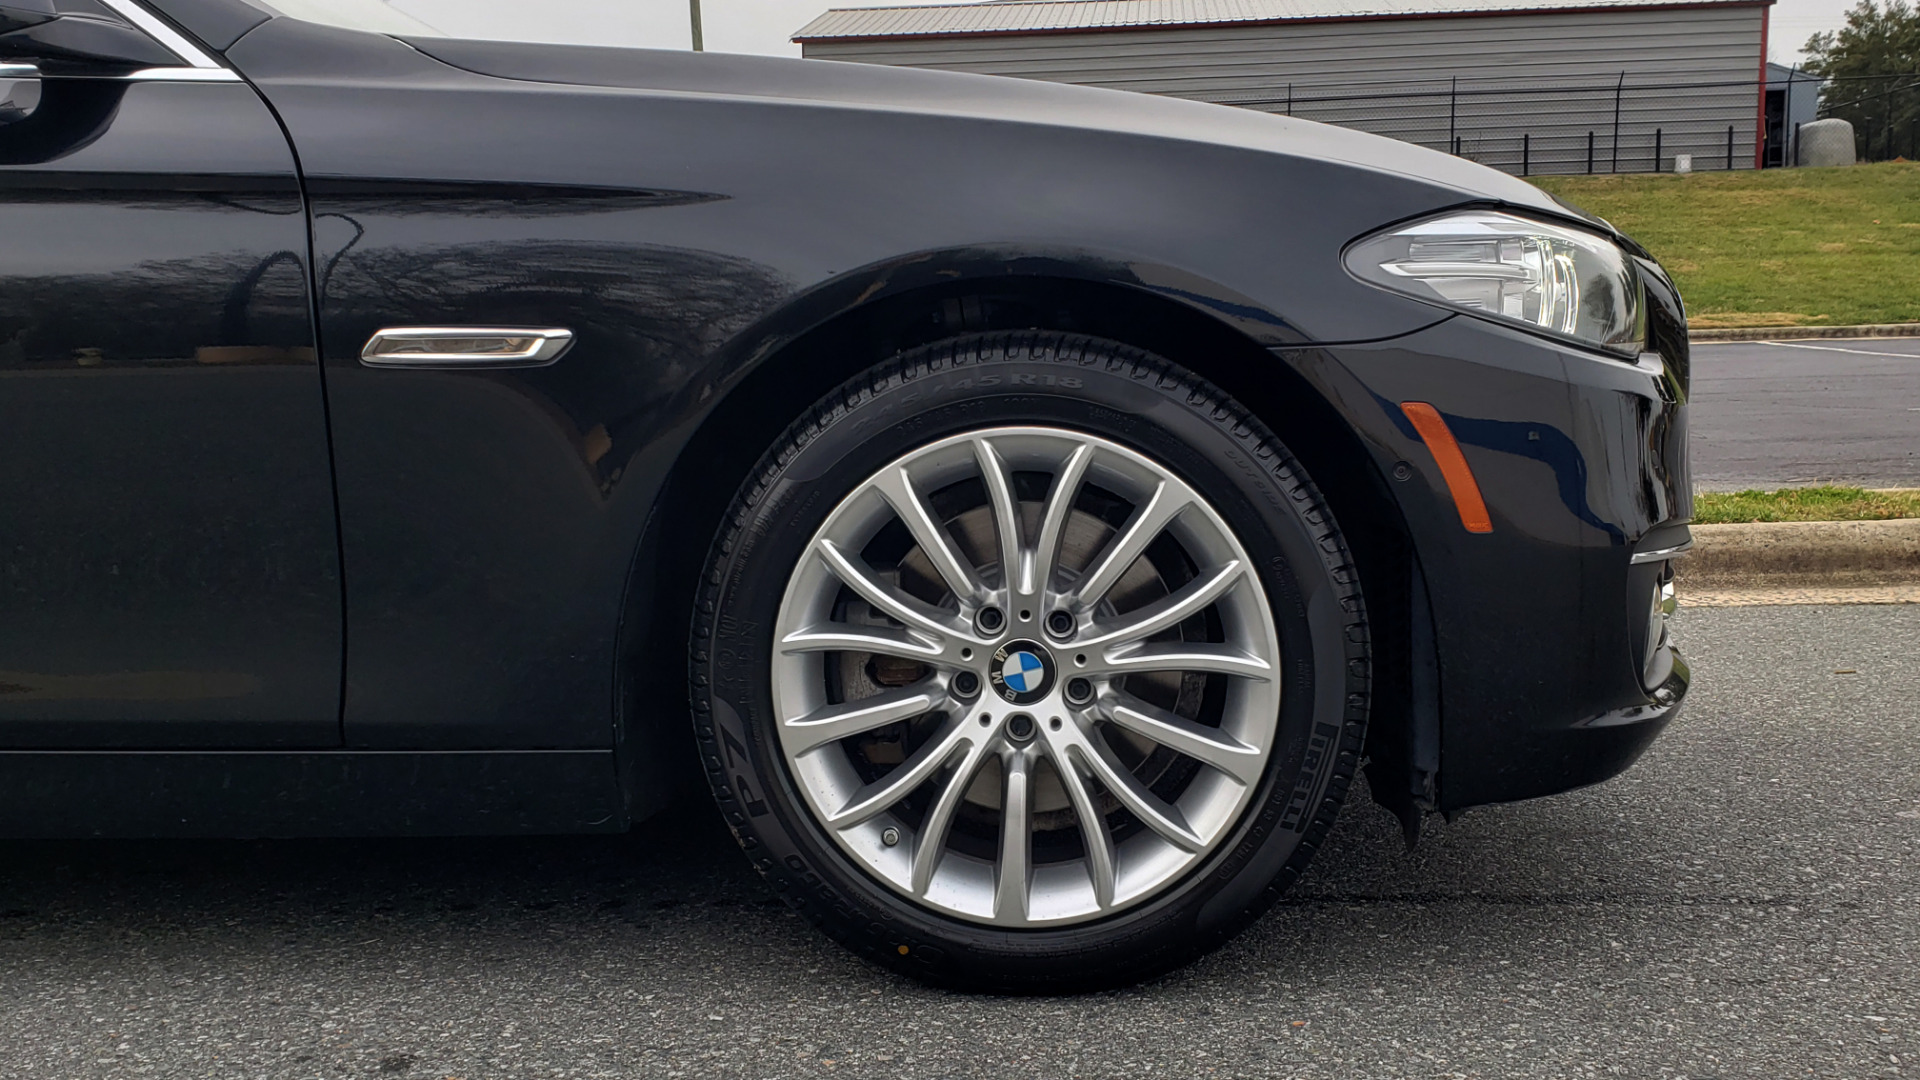 Used 2016 BMW 5 SERIES 528i XDRIVE / PREM PKG / DRVR ASST PLUS / LUXURY / COLD WTHR for sale Sold at Formula Imports in Charlotte NC 28227 13